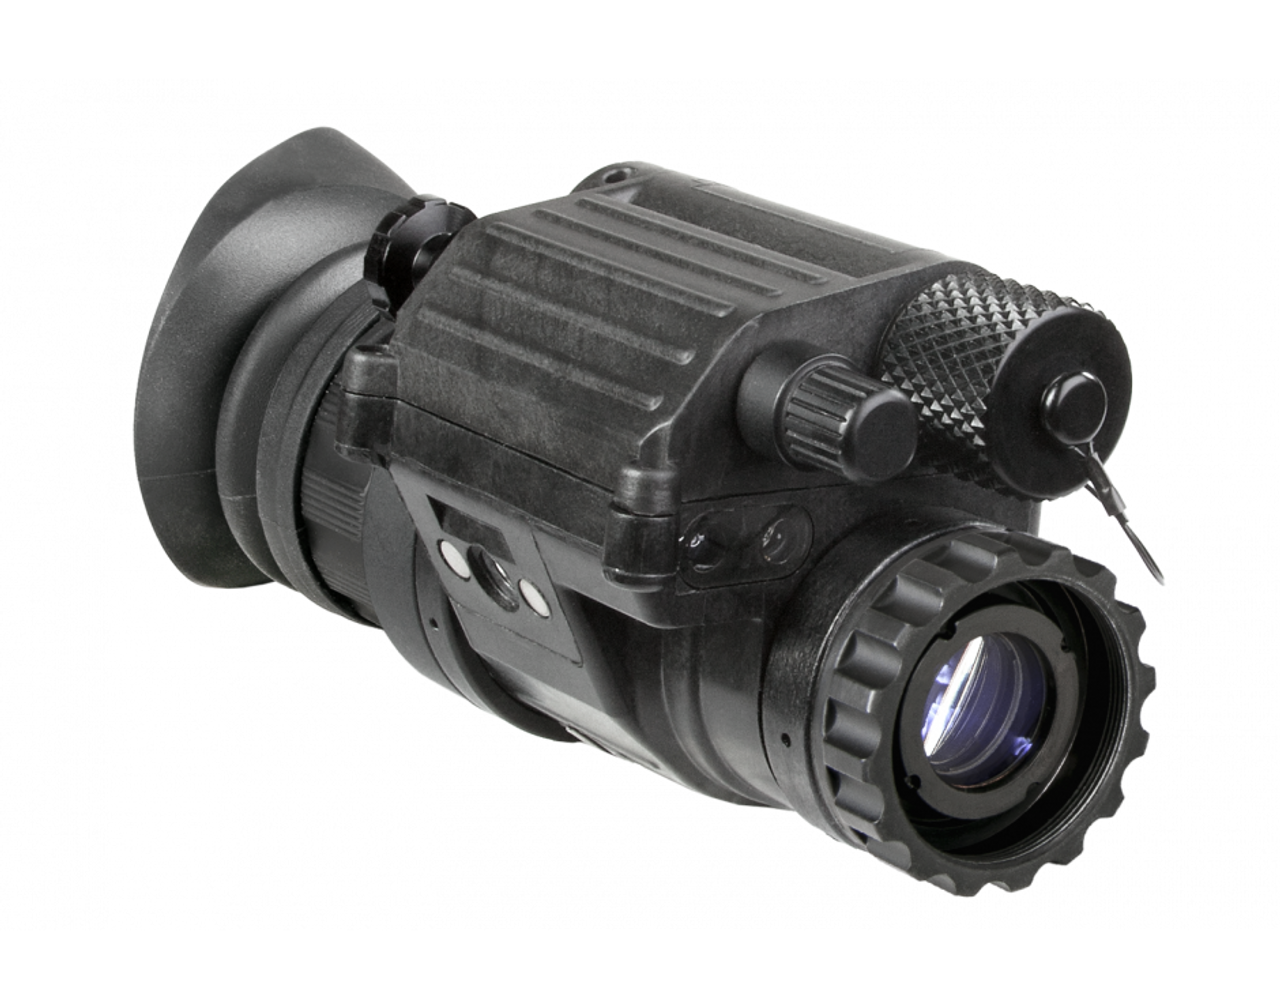 "AGM PVS14-51 3AL2 Night Vision Monocular 51 degree FOV Gen 3+ Auto-Gated ""Level 2"" ( AGM PVS14-51 3AL2)"